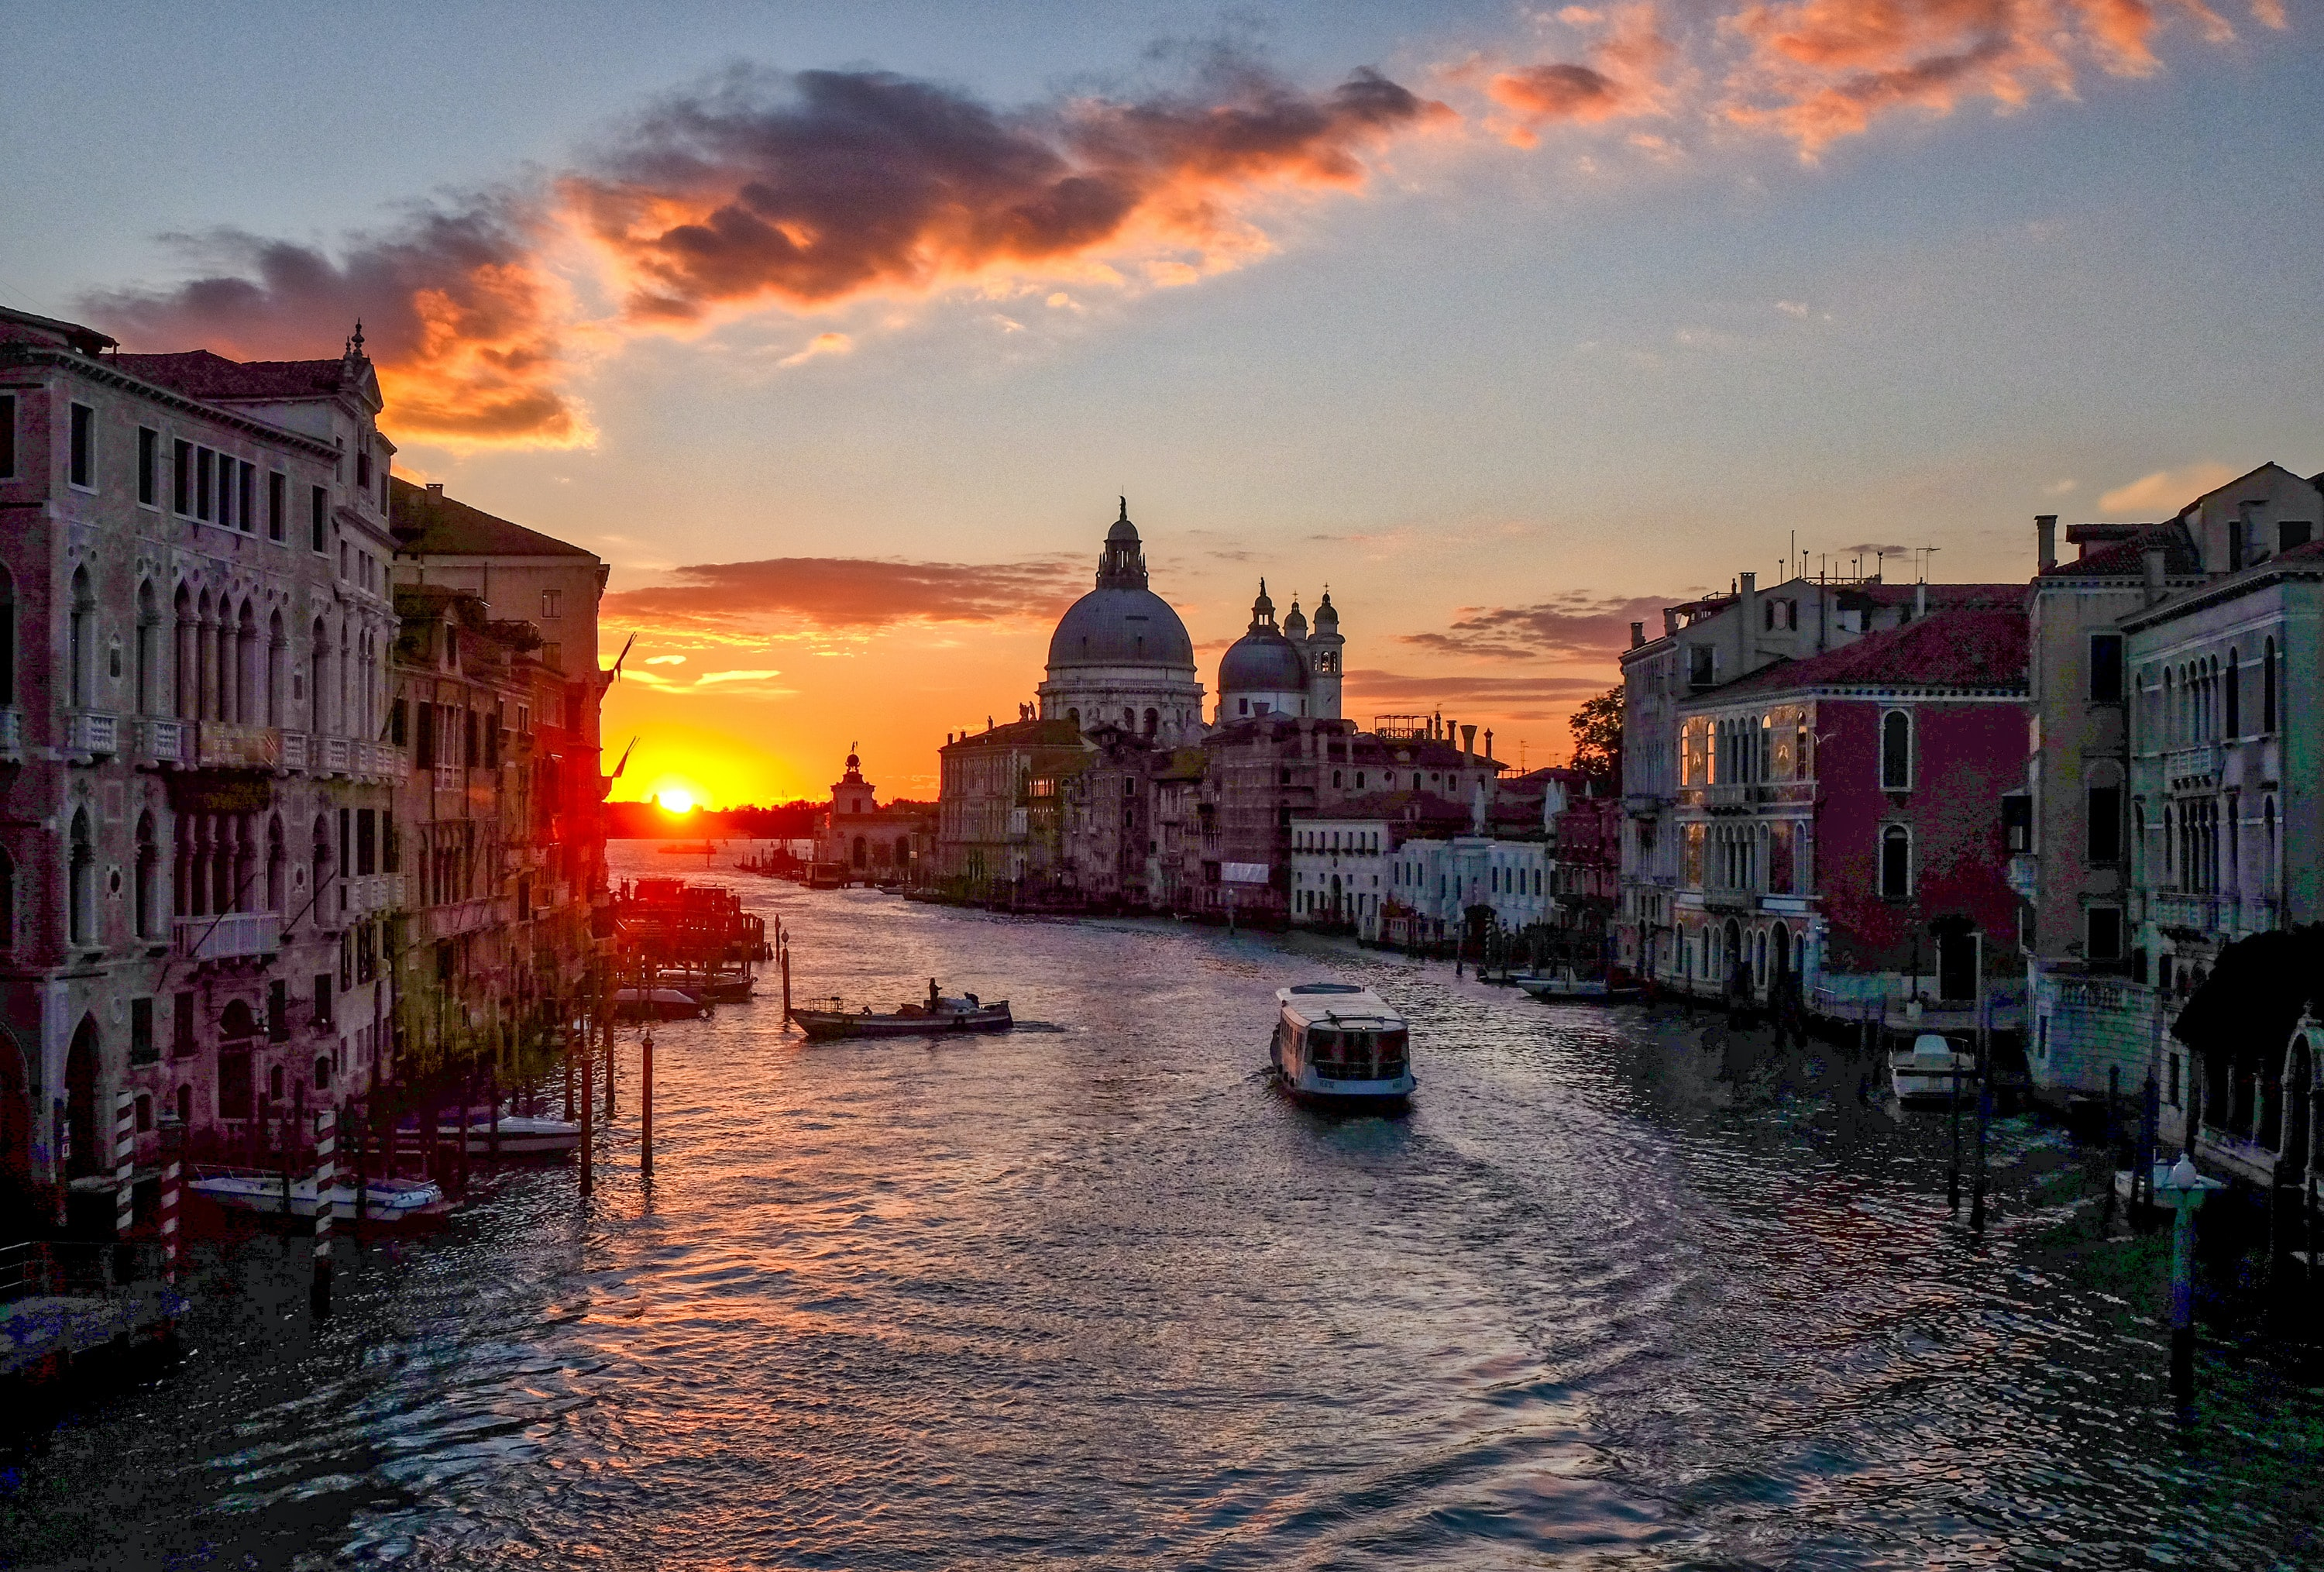 landscape photo of Venice during sunset